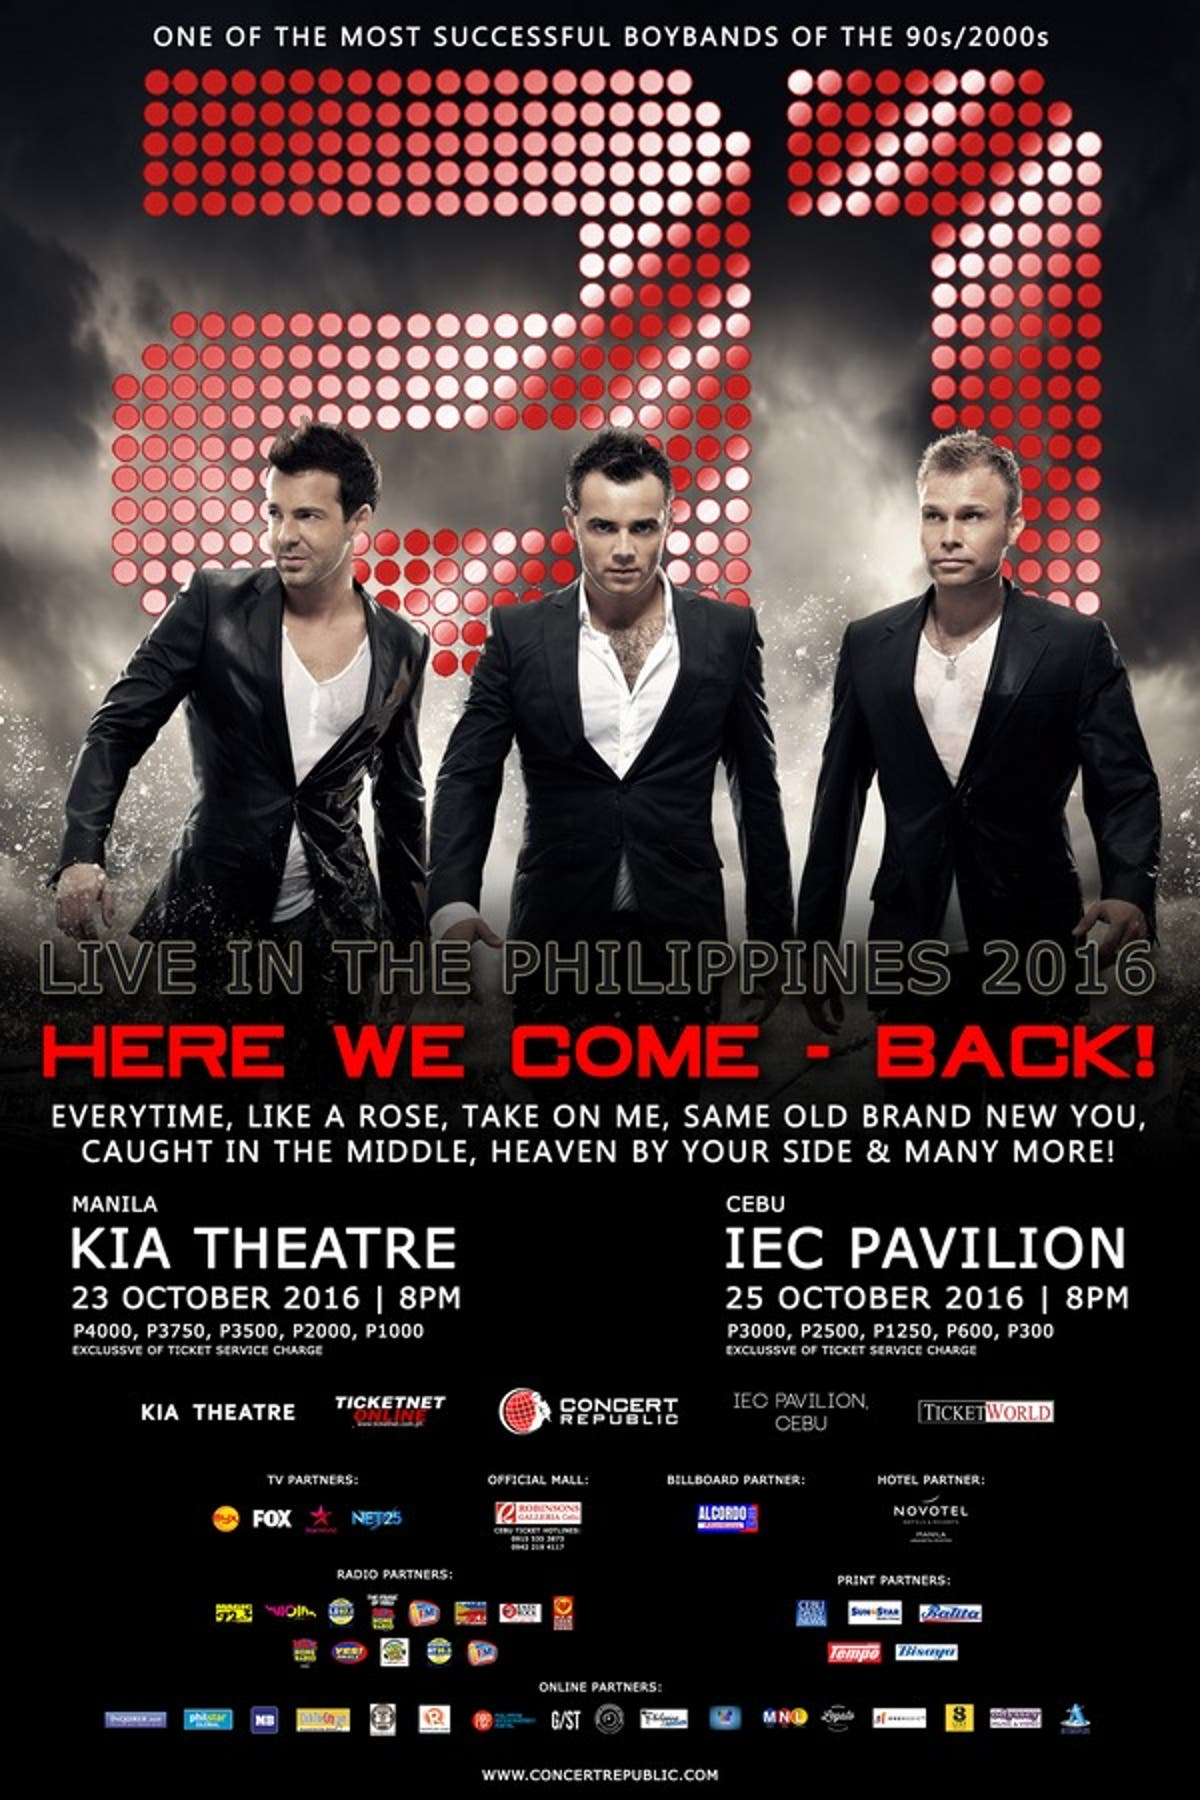 A1 ARE COMING BACK TO THE PHILIPPINES FOR A 2 NIGHT SHOW